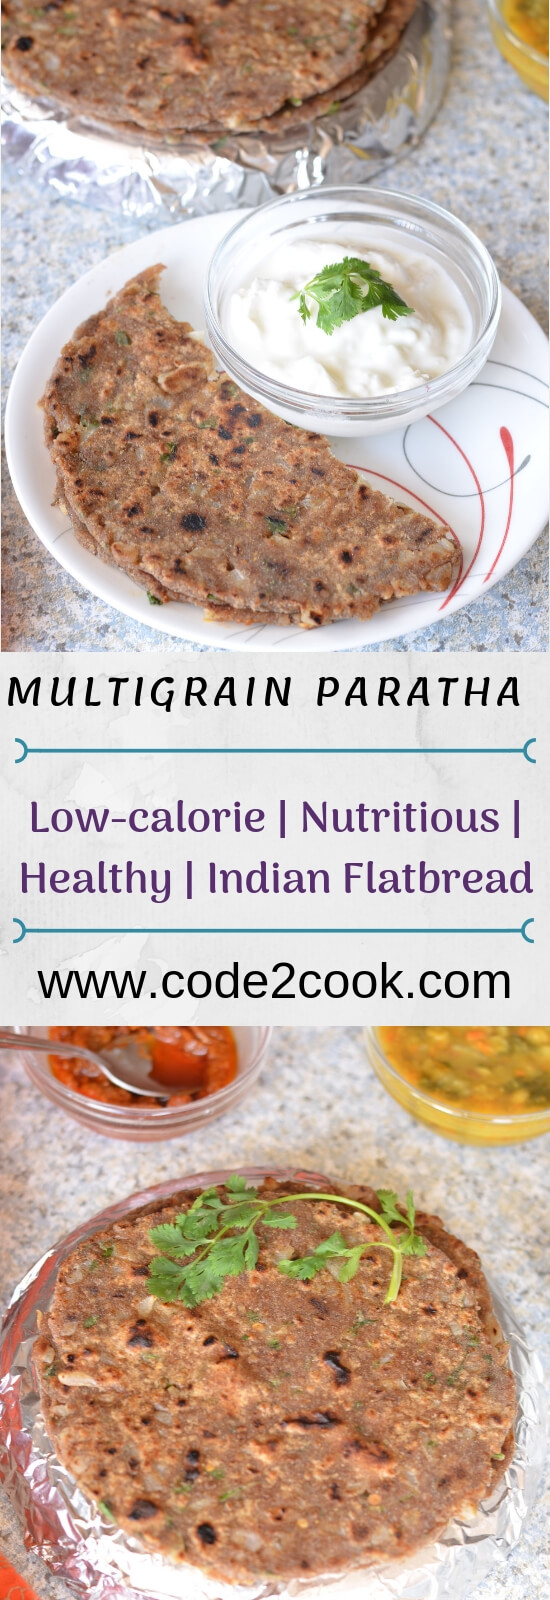 Multigrain paratha as the name says includes the different grains flour in equal quantity and then make rotior paratha.Multigrain paratha is low calories nutritious Indian flatbread with loads of nutrients depending on which flour combination you have.